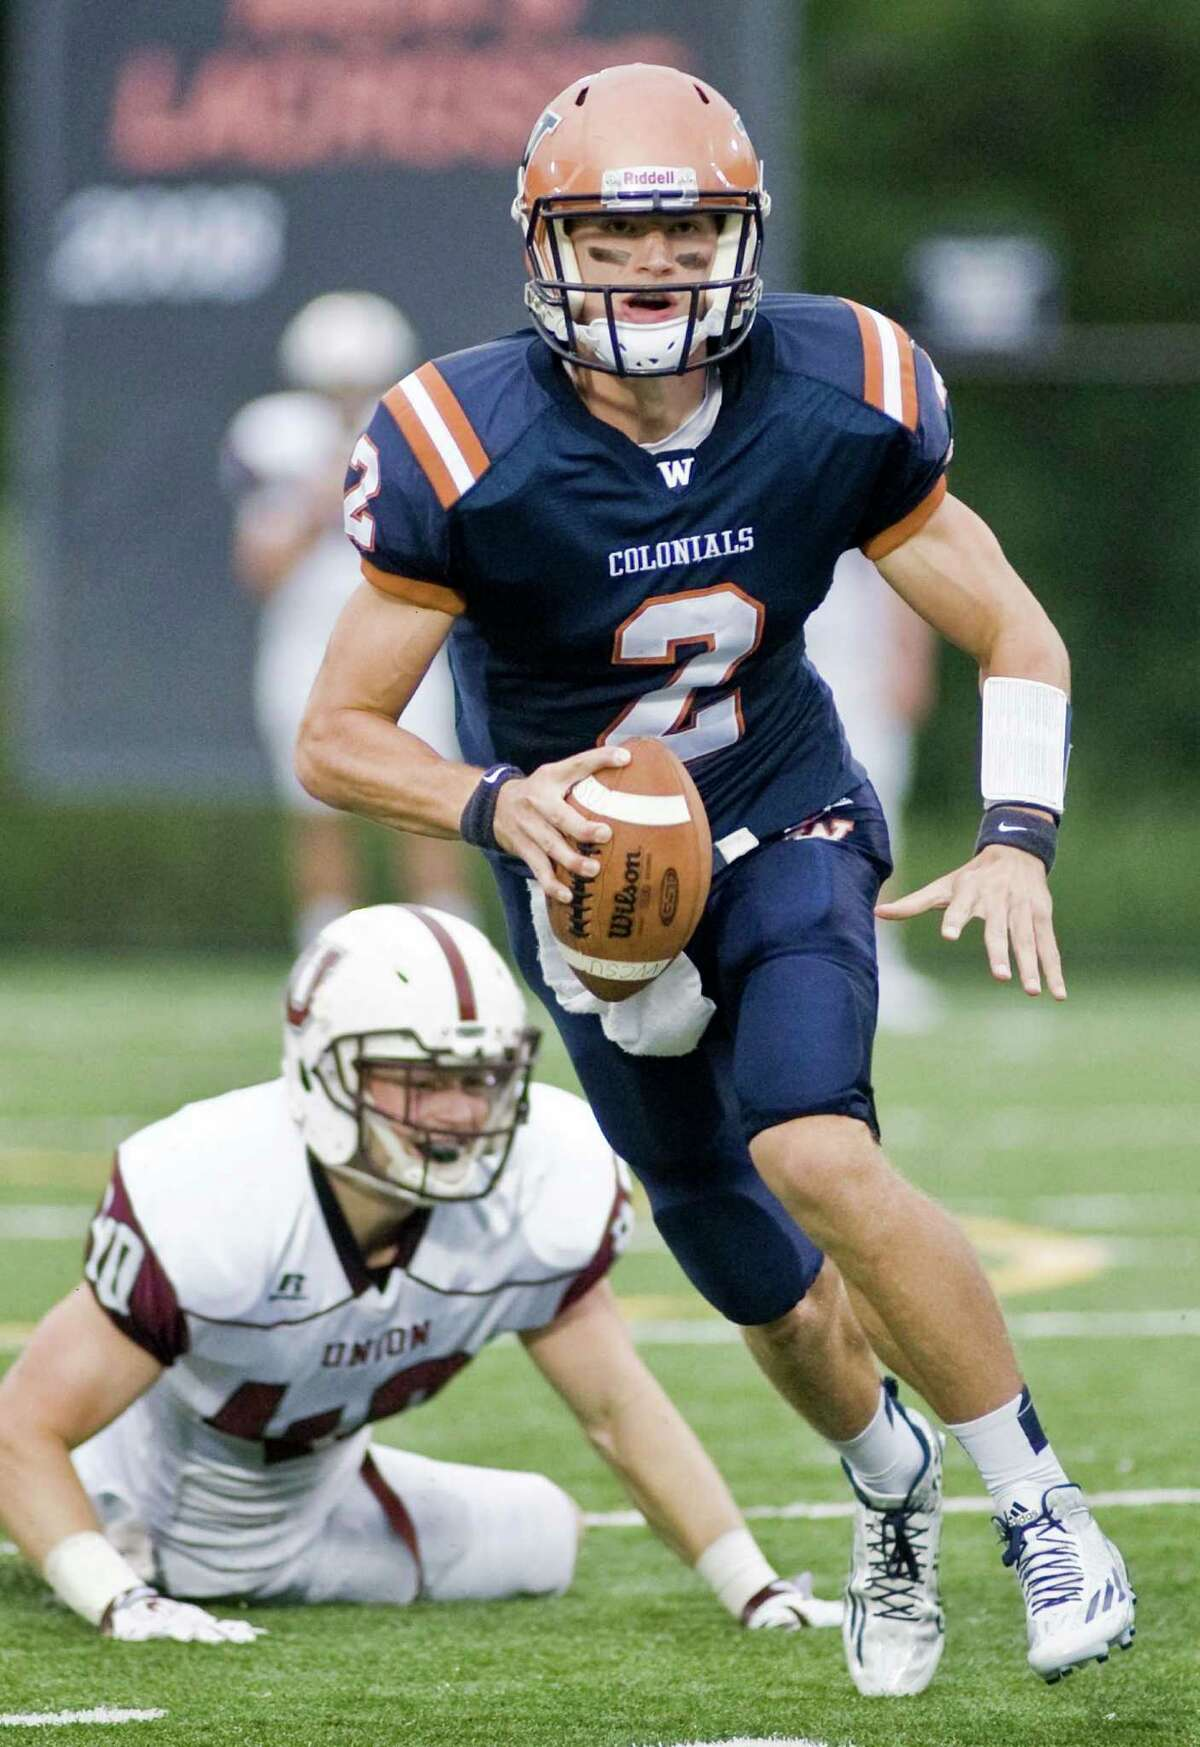 FILE PHOTO: WCSU Colonials quarterback Will Arndt looks for a receiver during a game against Union College, played at Western Connecticut State University Westside Athletic Complex. Saturday, Sept. 12, 2015